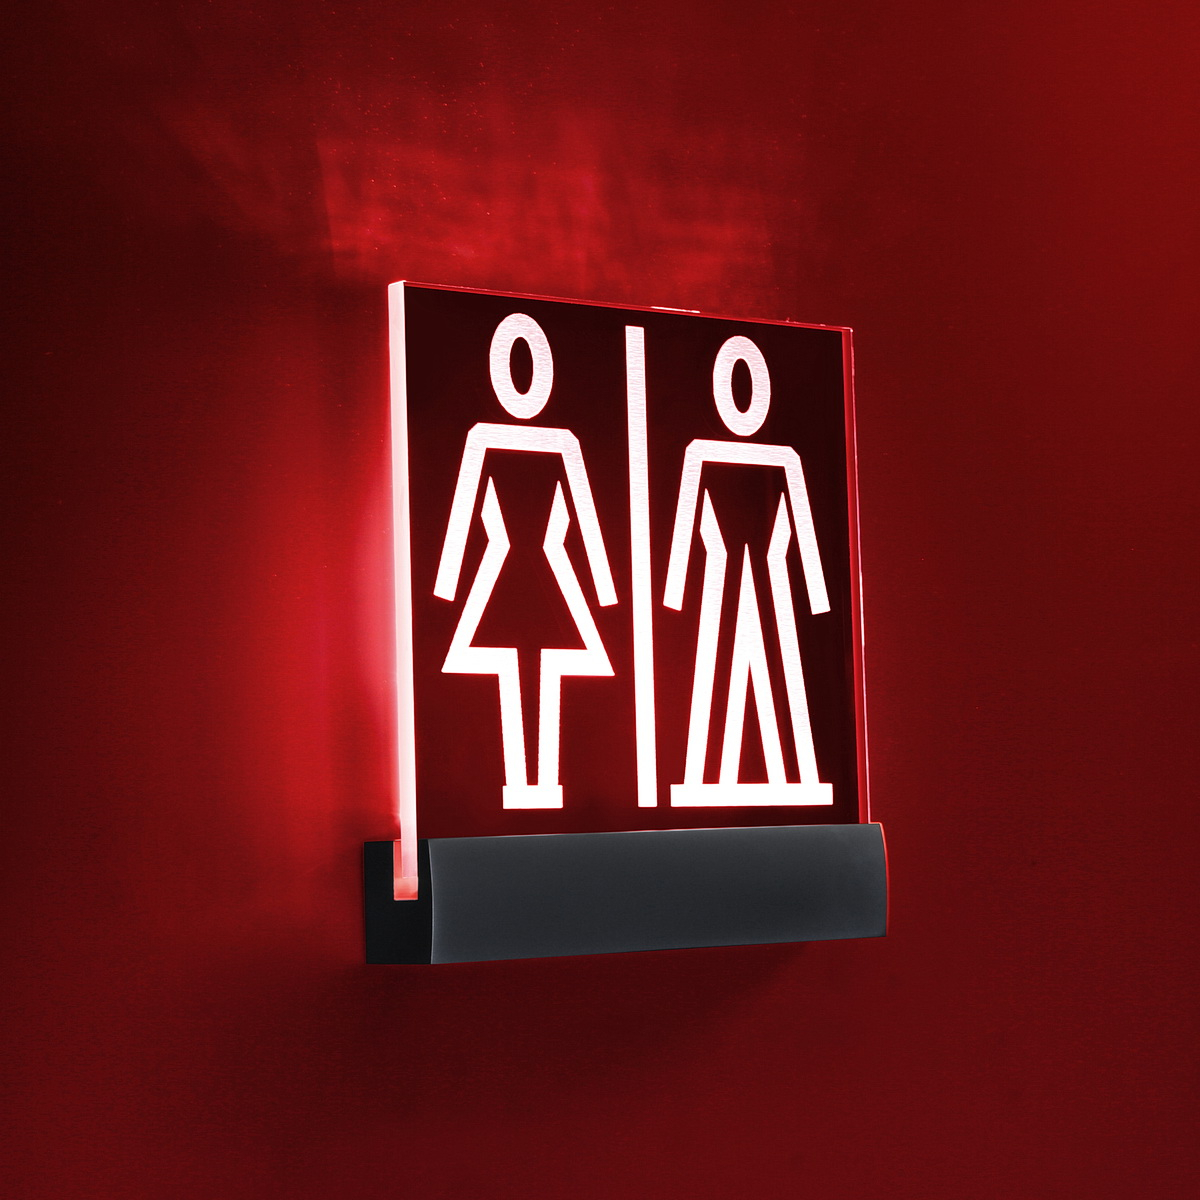 RED LED Sign Clamp in 4 3/4'' (120 mm) length X 1'' (25.4 mm) Silver satin aluminum finish.Mount Kit Supports Signs Up To 5/16'' Thick, Wall Mount, Low Voltage transformer included.